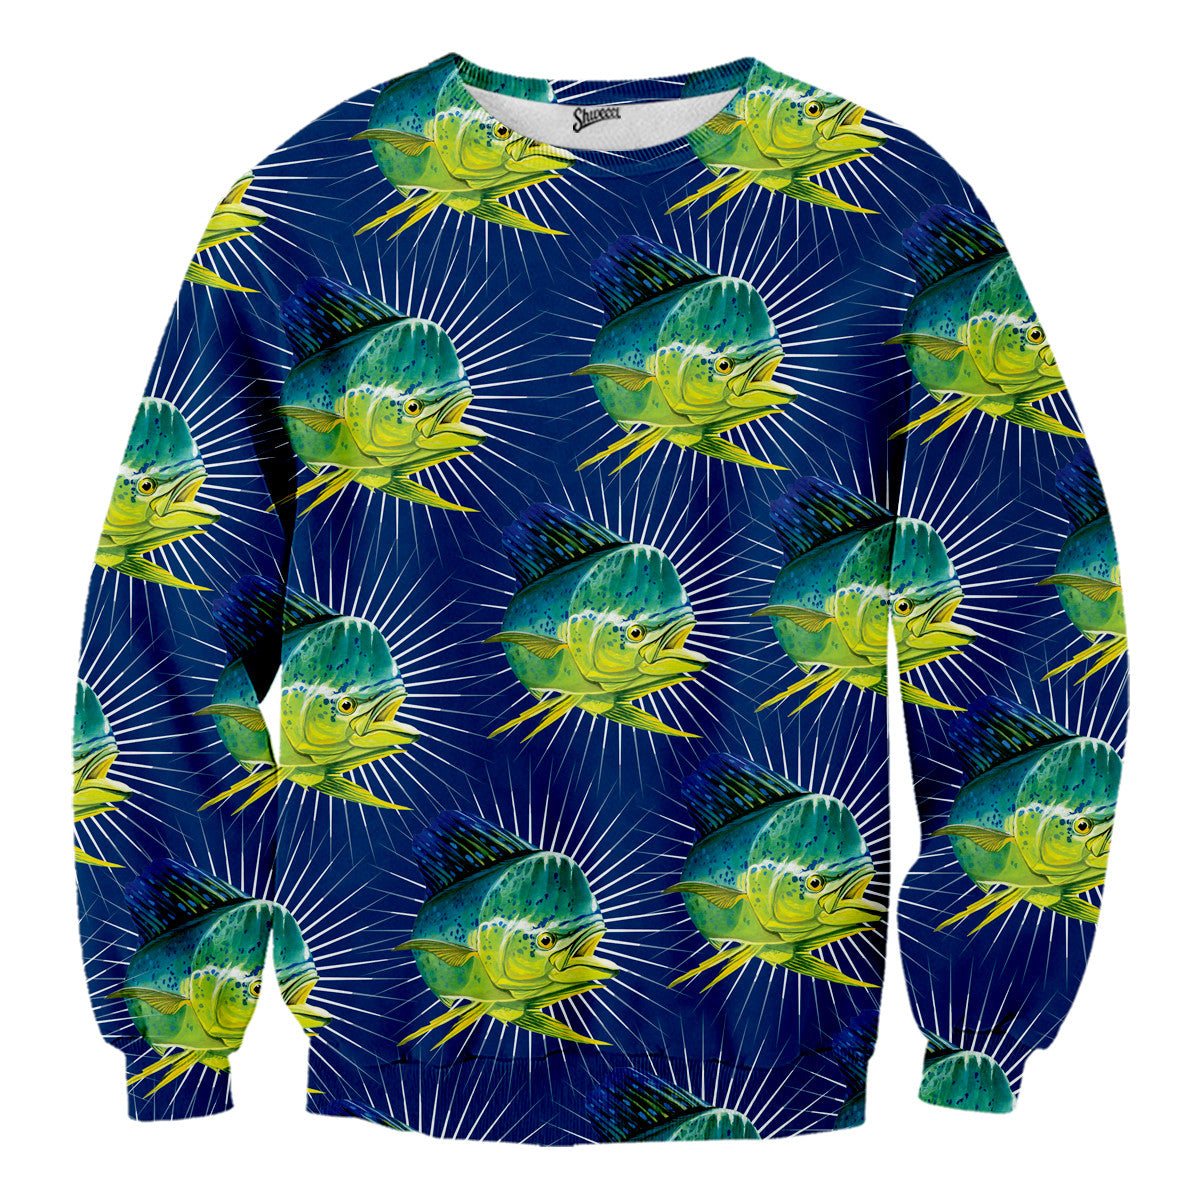 Mahi Fish Sweater - Shweeet